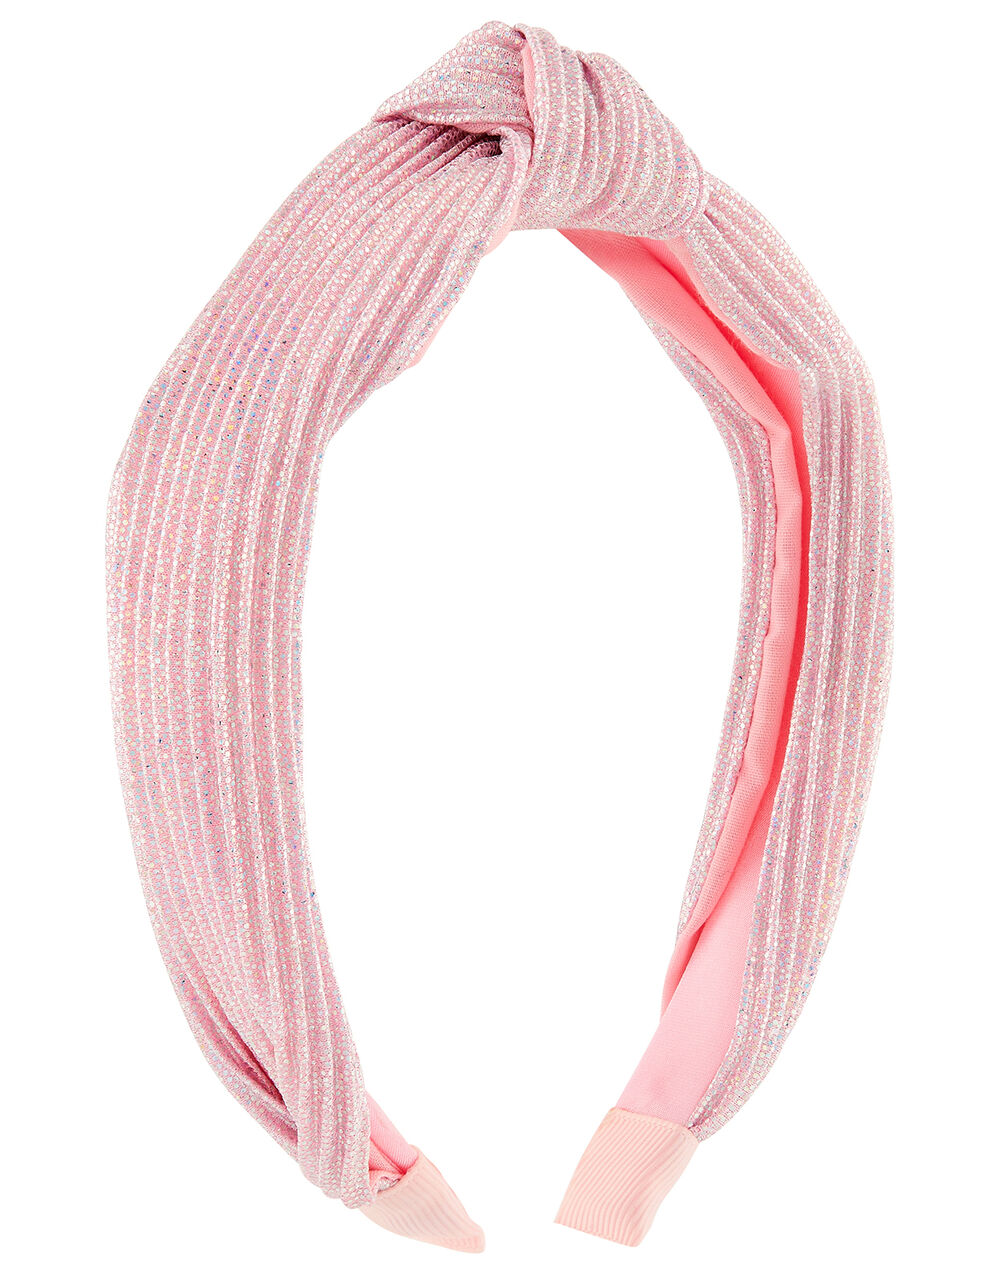 Sparkly Knotted Headband, , large